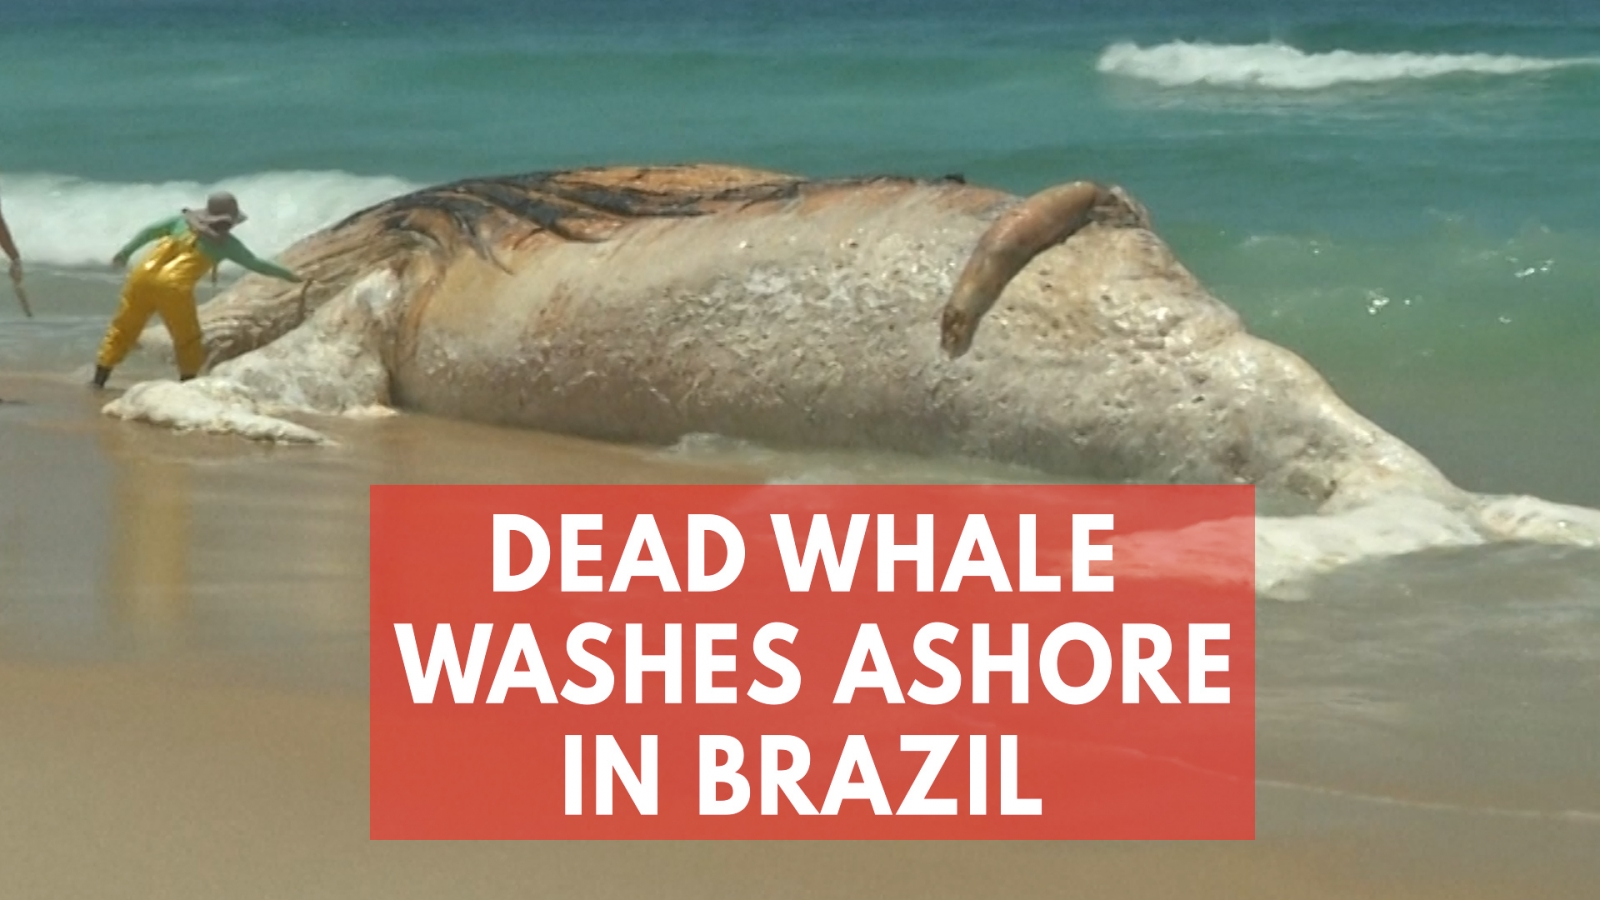 Carcass of giant whale washes up on iconic beach in Brazil's Rio de Janeiro